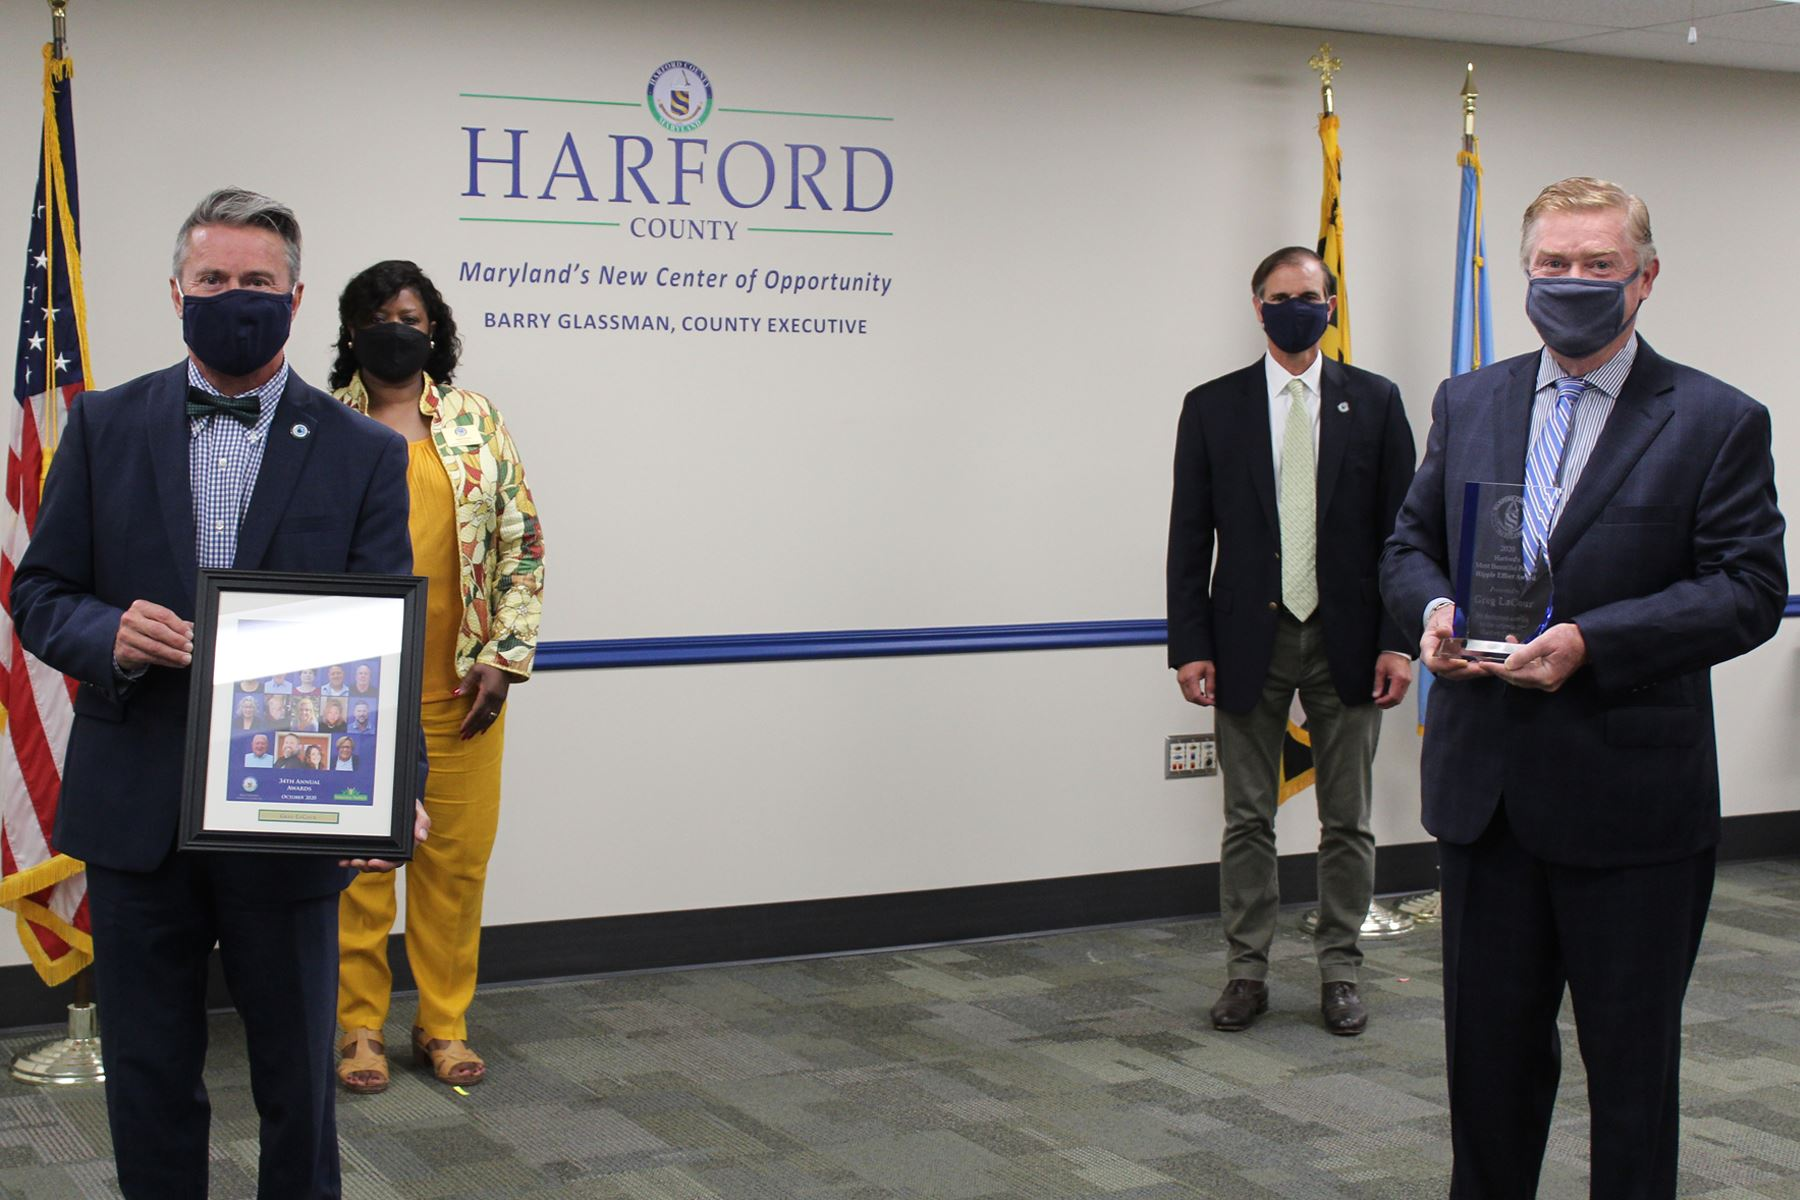 Greg LaCour, Presentation of Harford's Most Beautiful Ripple Effect Award